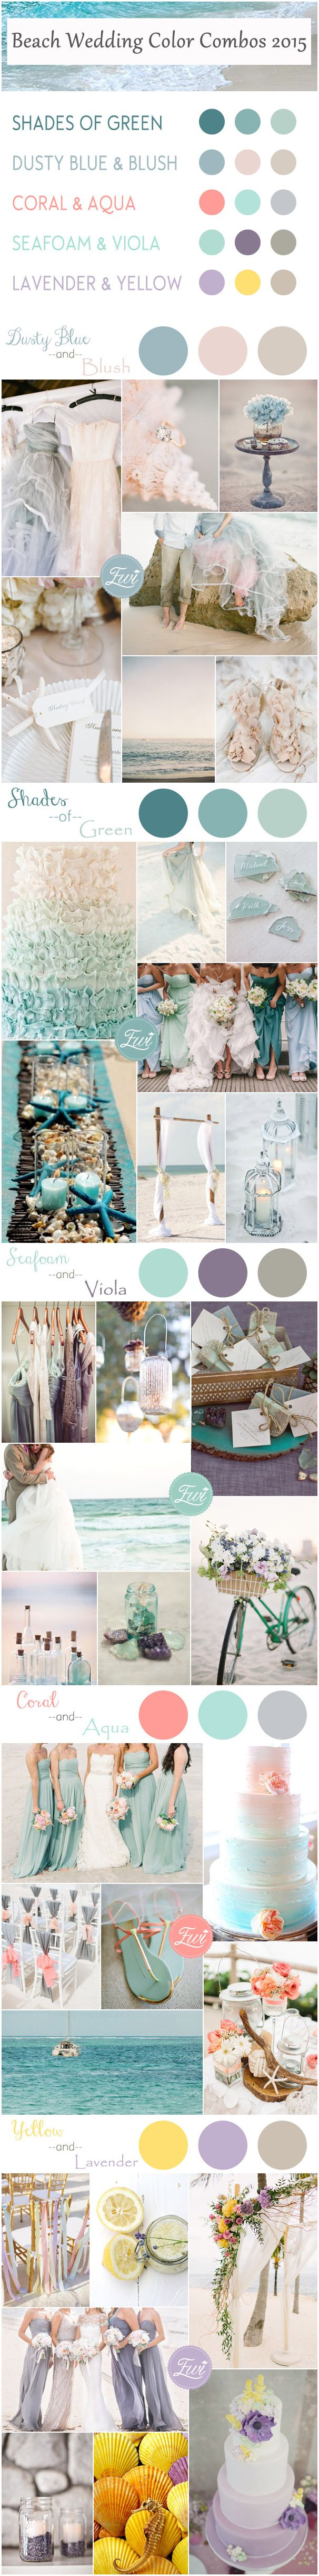 Top 5 Beach Wedding Color Ideas for Summer 2015 | Pinterest | Beach ...